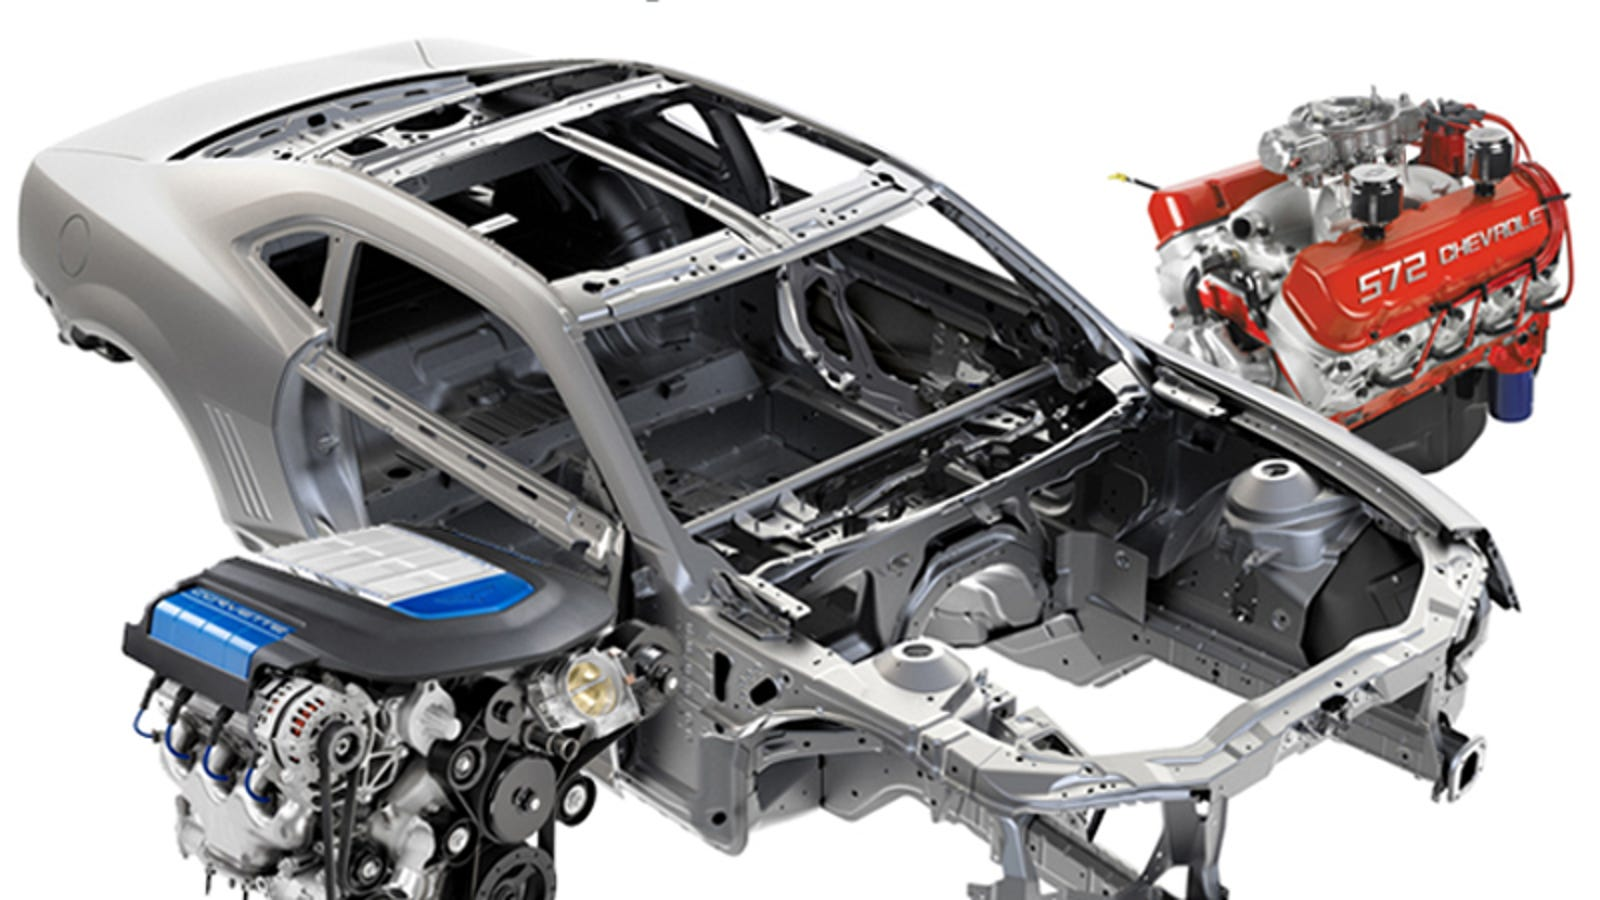 GM Performance Parts To Offer $7,000 Body-In-White New Camaro